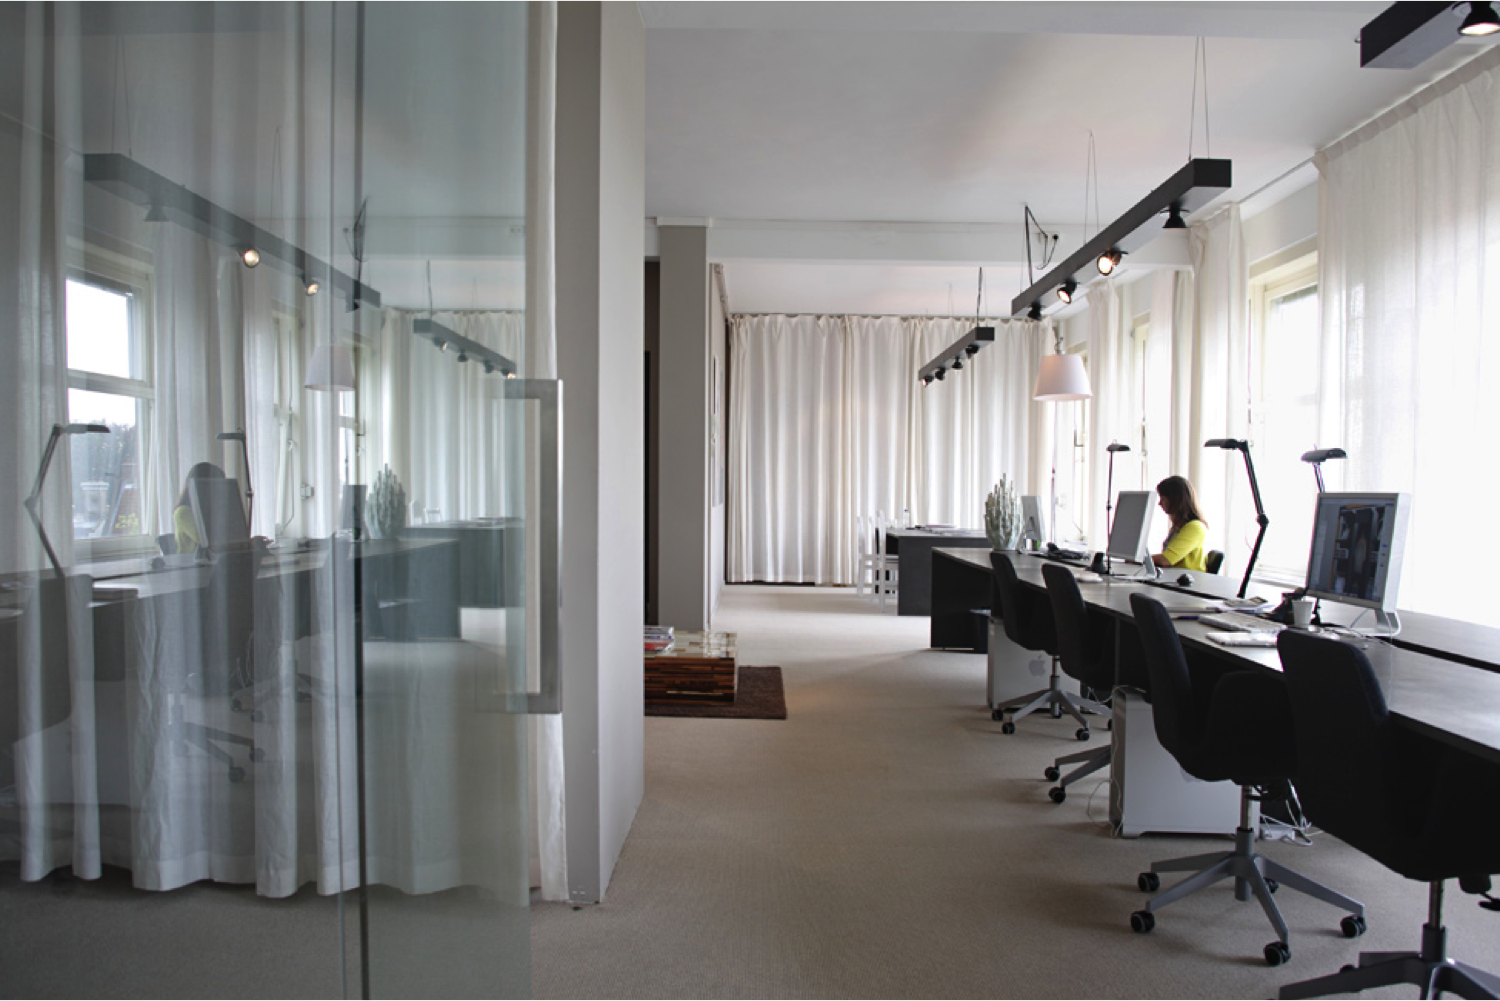 the flowing curtains add a softness to the space. | contemporary